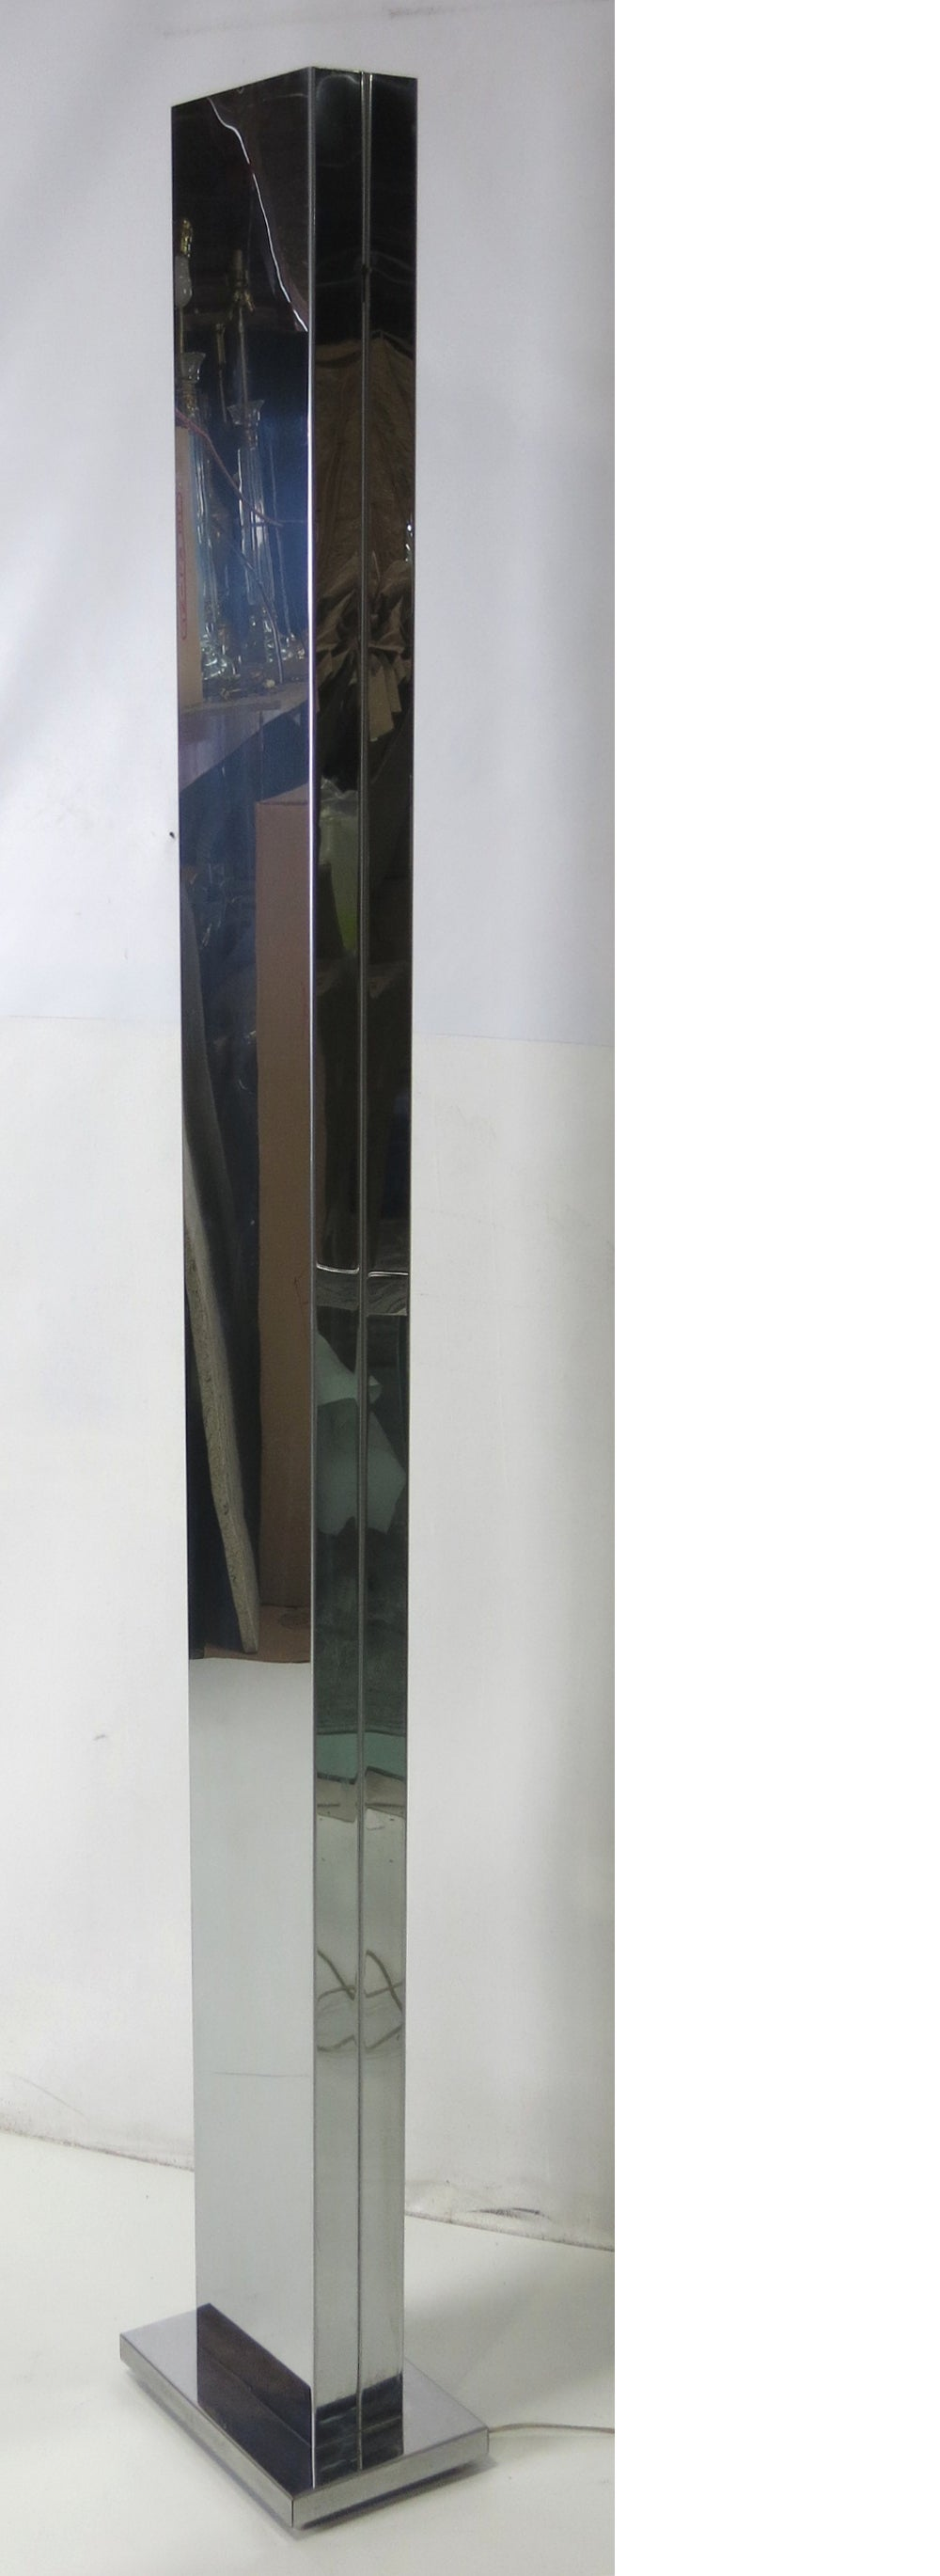 Pair of chrome monolith torchieres by the venerable Casella Lighting of San Francisco. The pair is in excellent original condition.